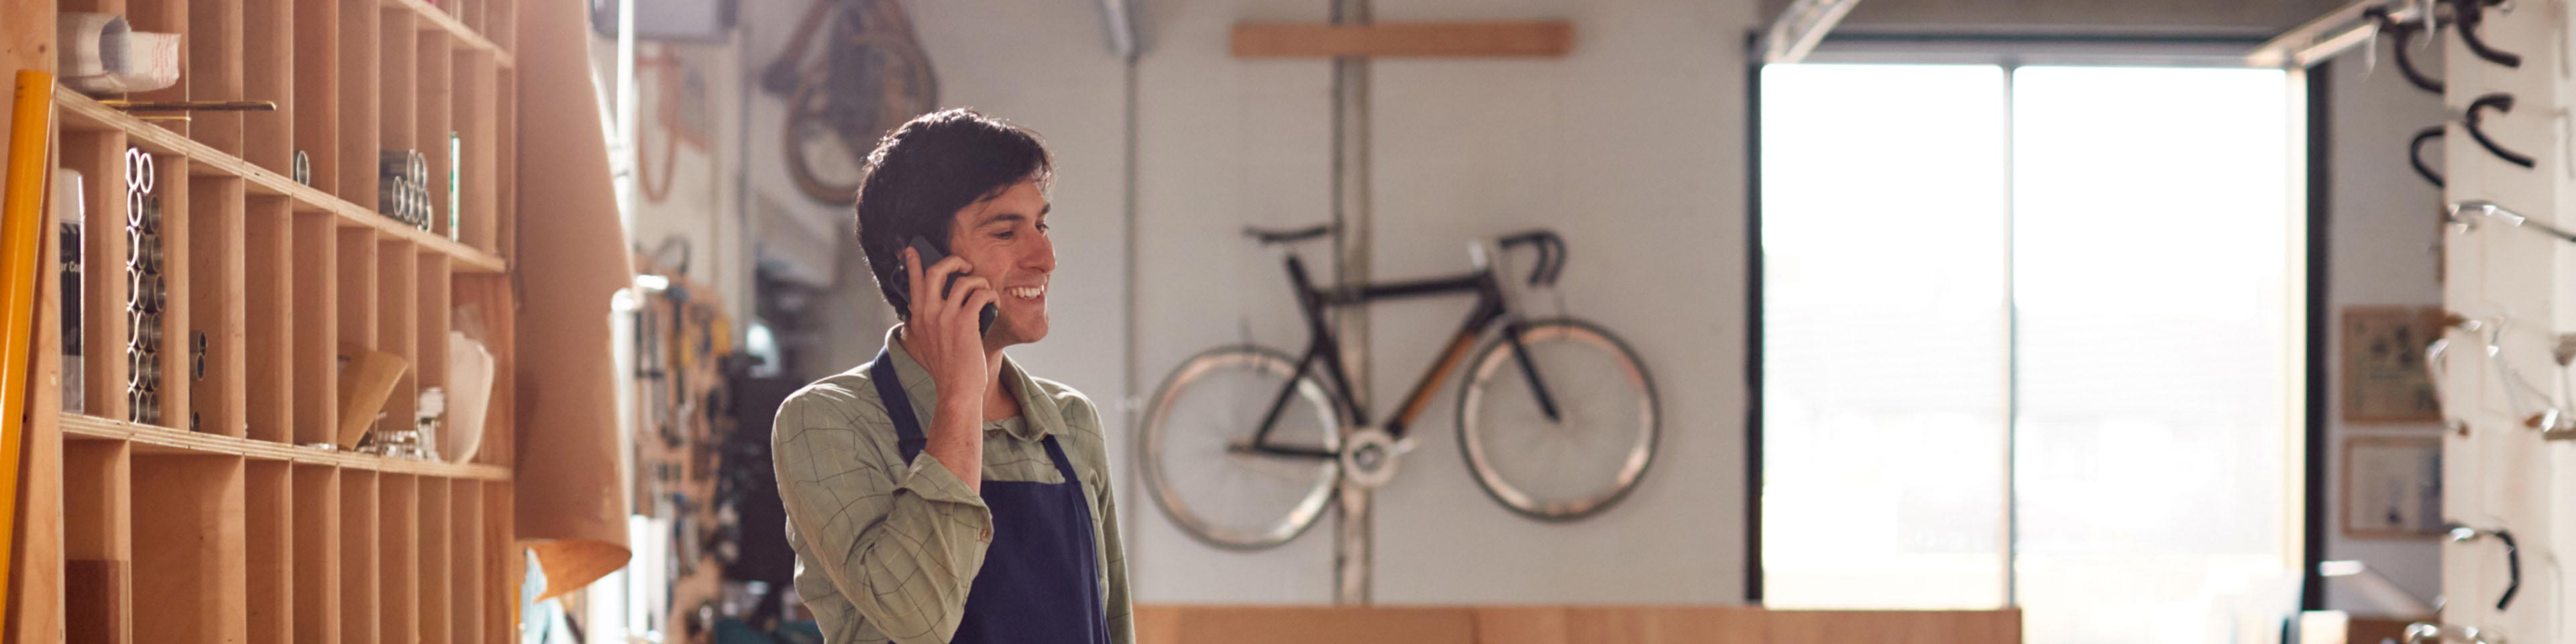 man in a bikeshop making a phone call about accounting for cash transactions